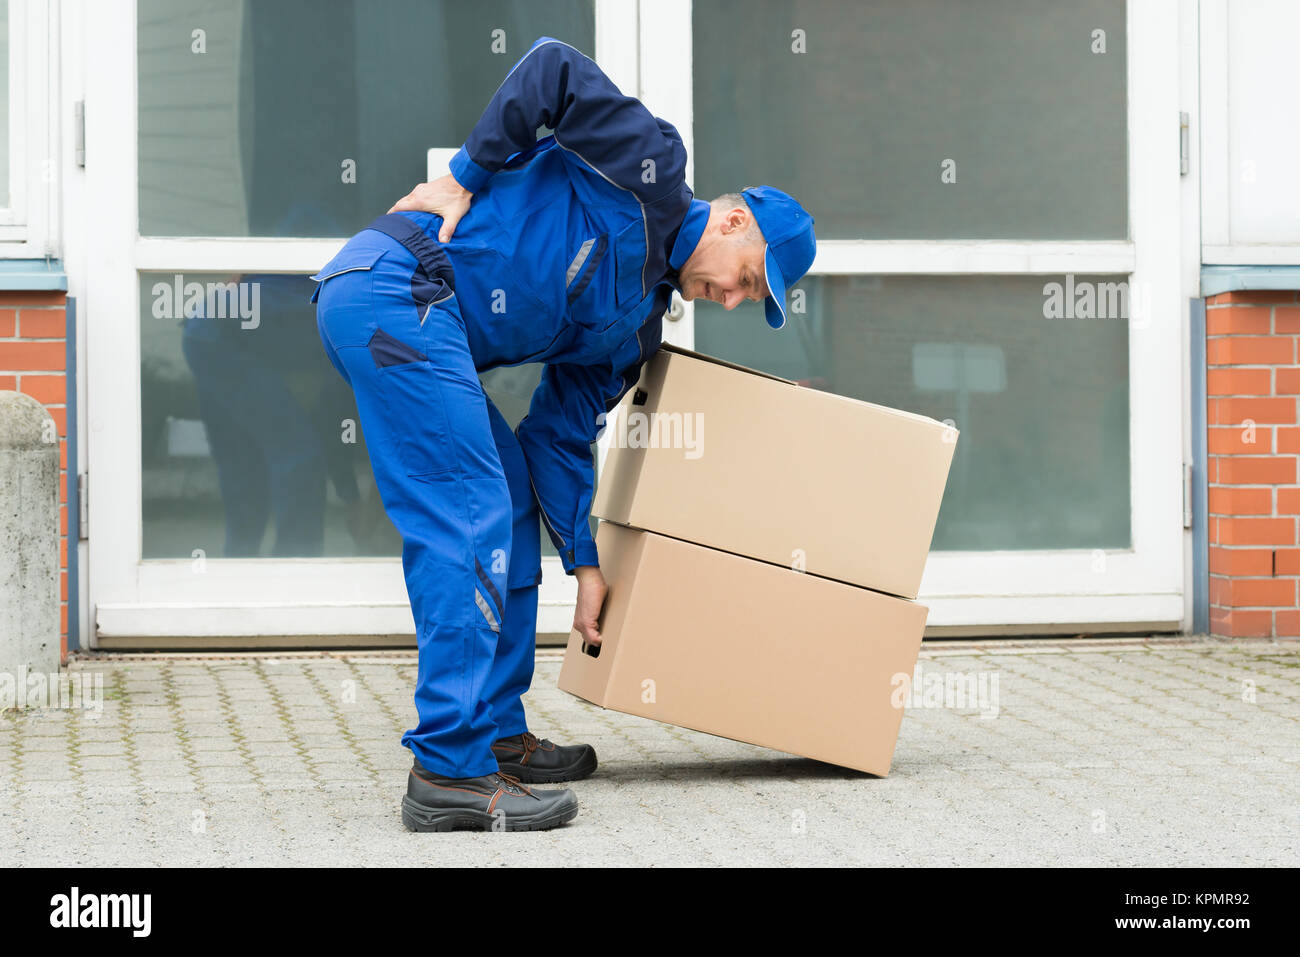 Delivery Man Suffering From Backpain - Stock Image